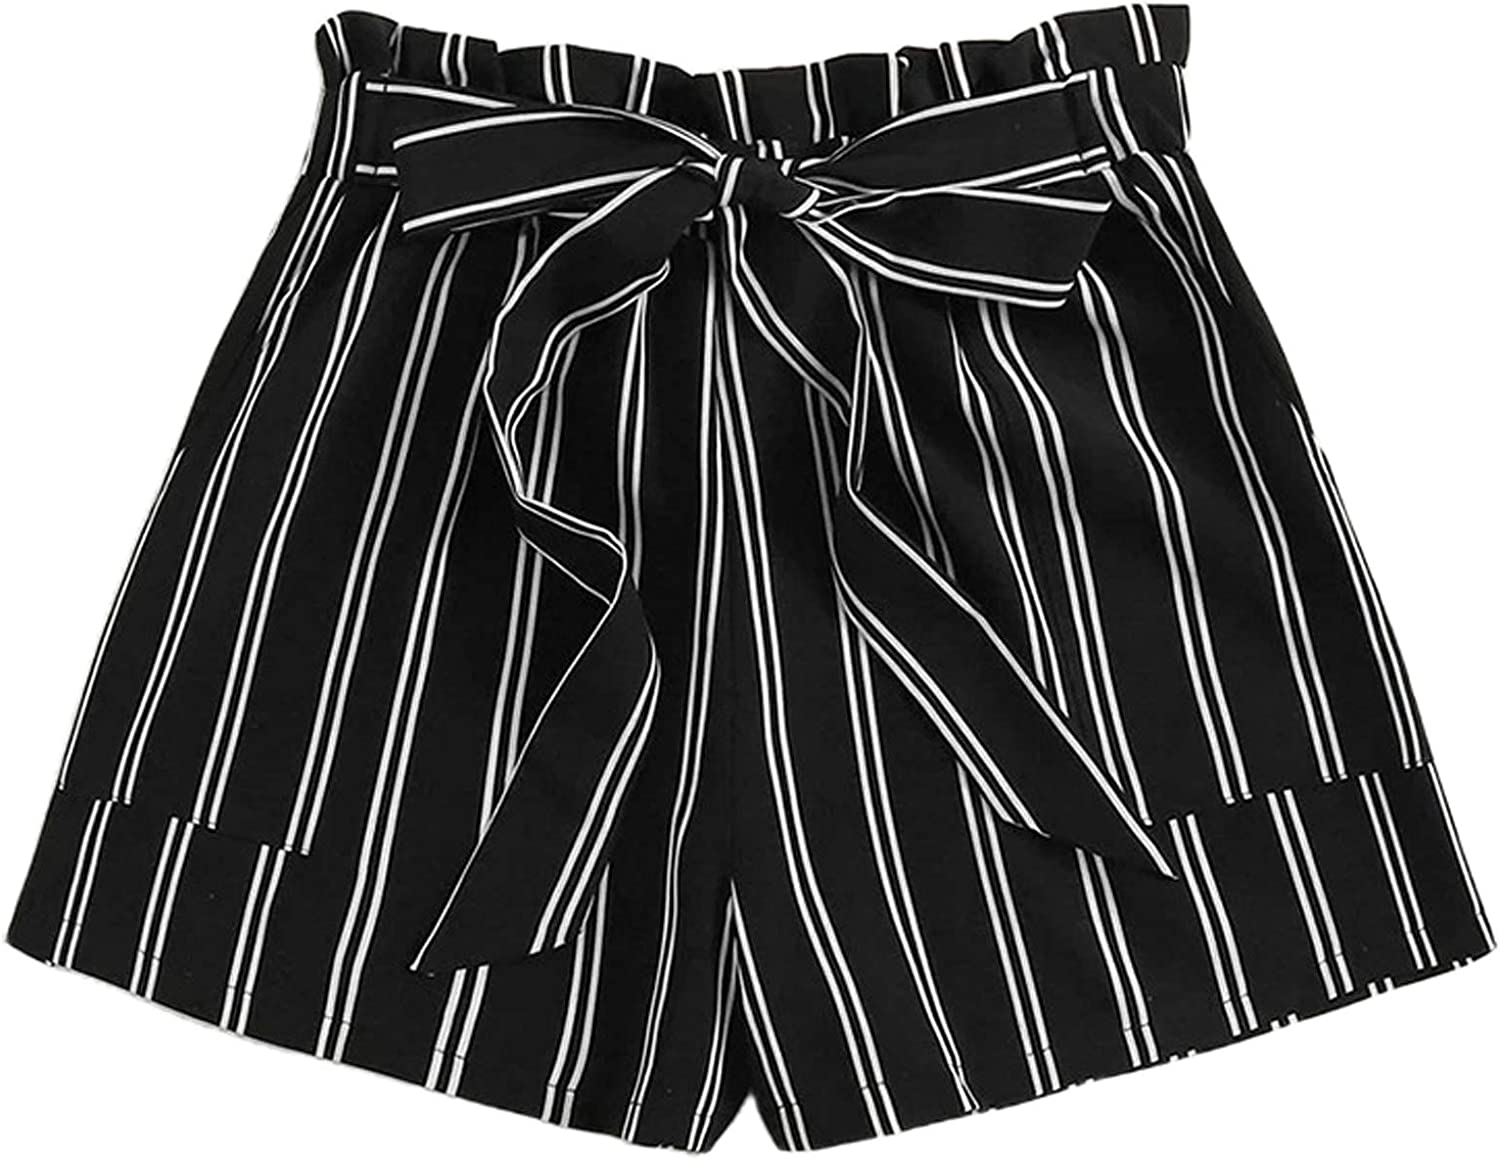 Remidoo Women's Summer Casual Frill Elastic Waist Striped Shorts with Pockets